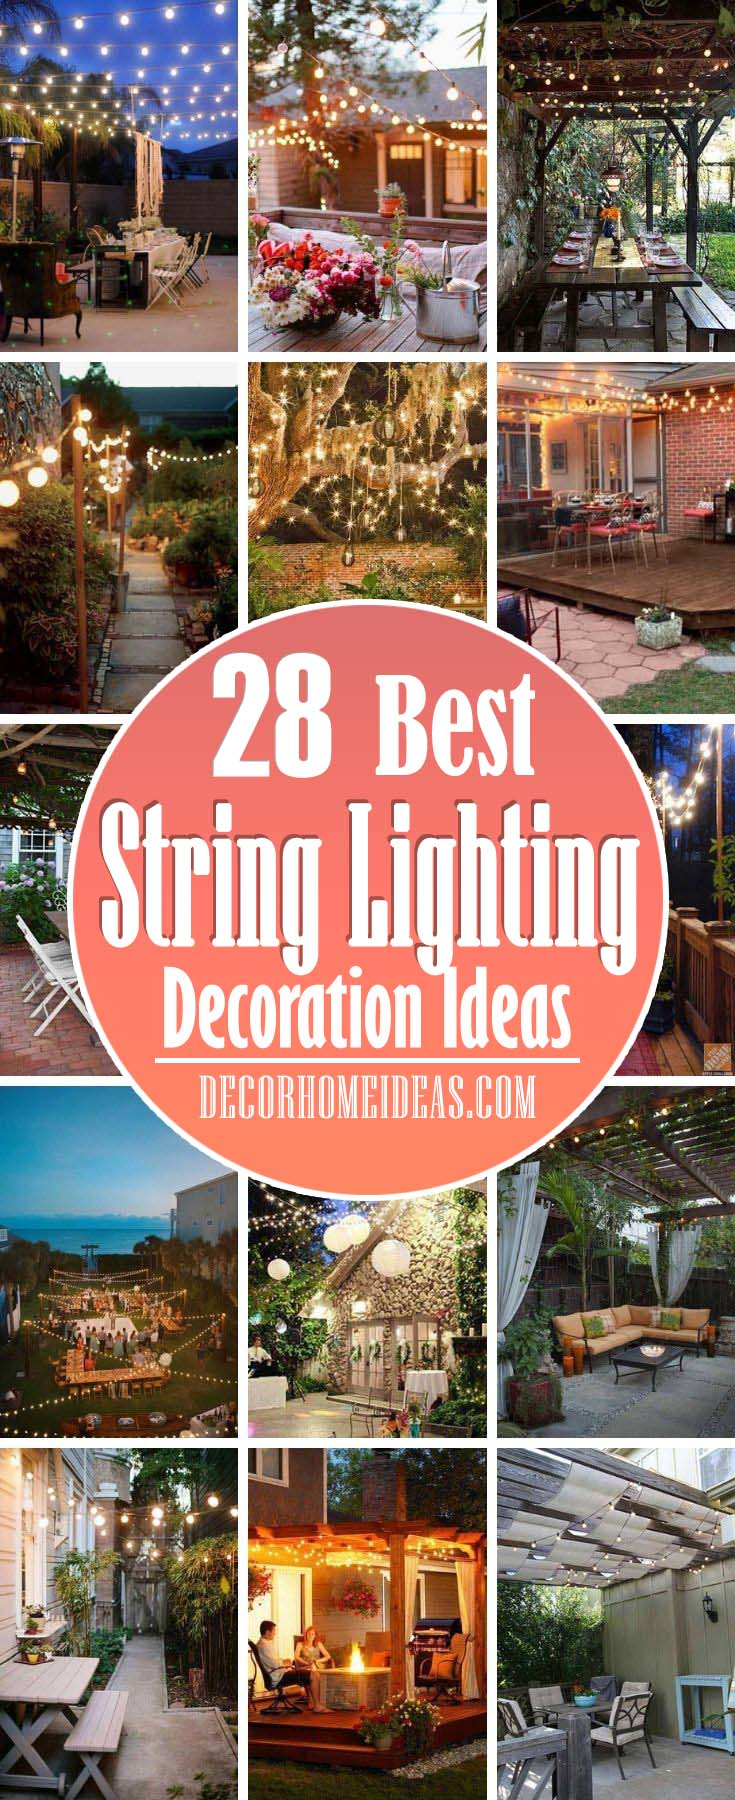 Best Yard Patio String Lighting Ideas. String lights aren't just for festive holidays. These bright, affordable mini-bulbs can add sparkle and enjoyment to your outdoor spaces, whatever the season.